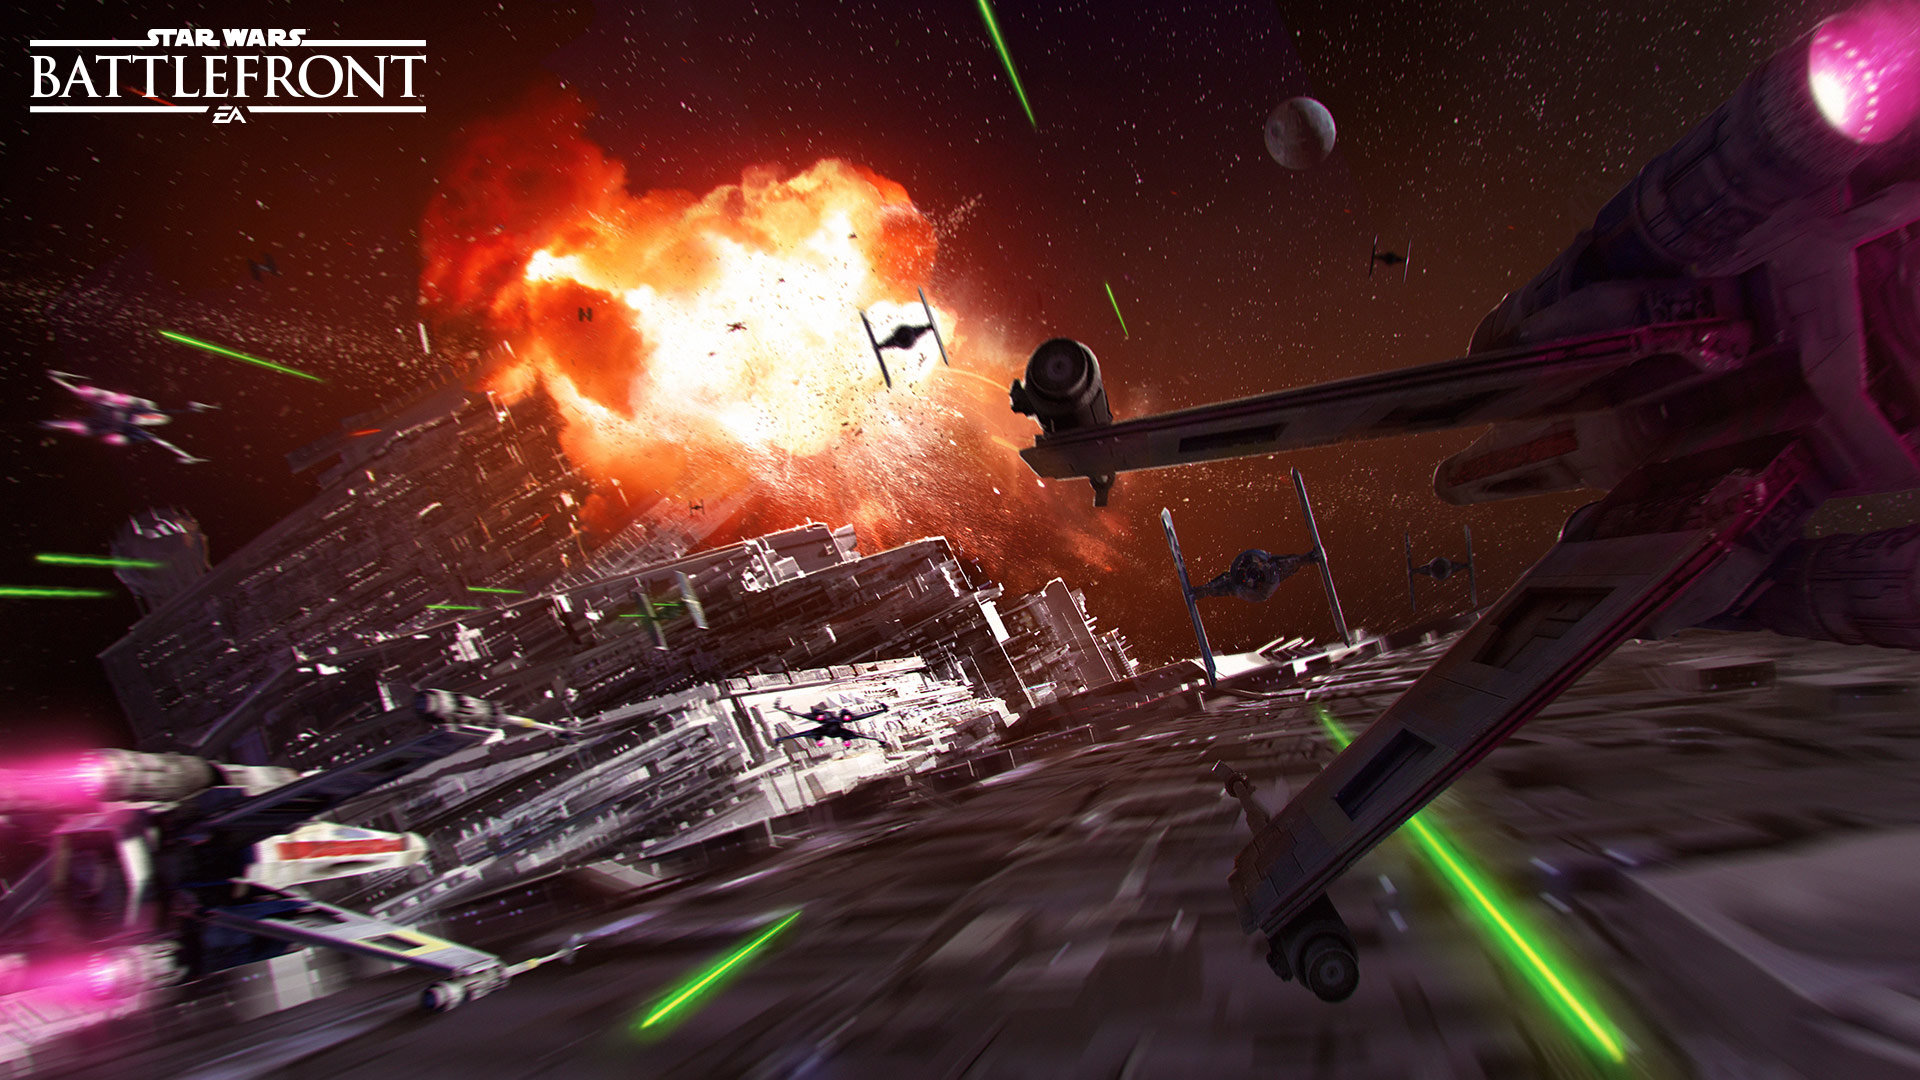 Download hd 1080p Star Wars Battlefront PC background ID:162469 for free